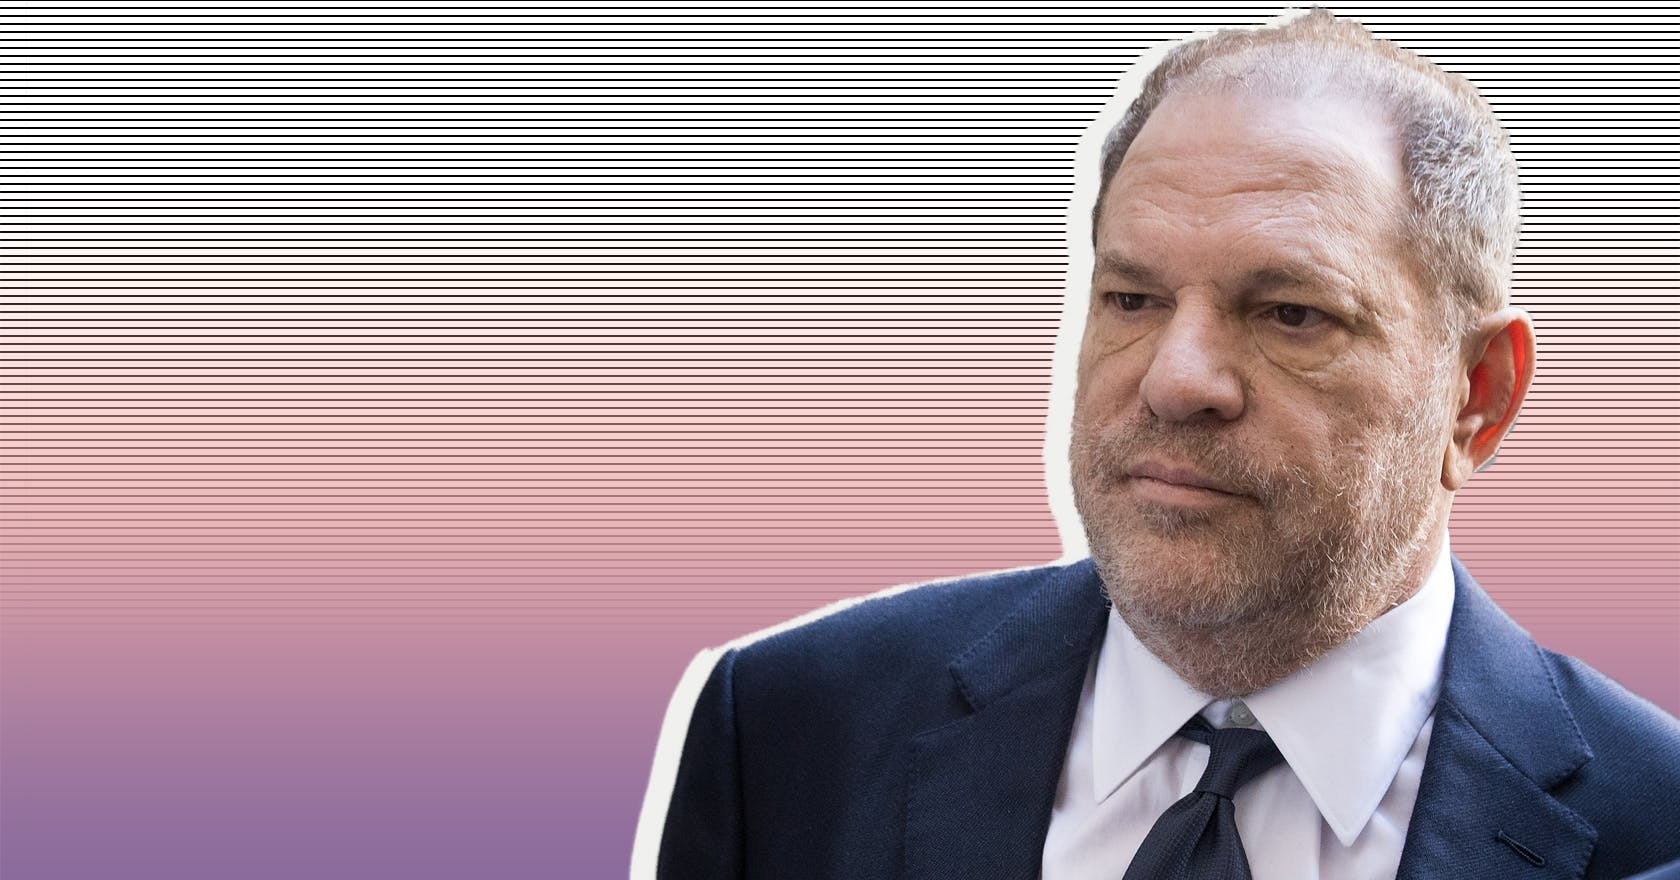 Harvey Weinstein faces charges in LA after guilty verdict in New York